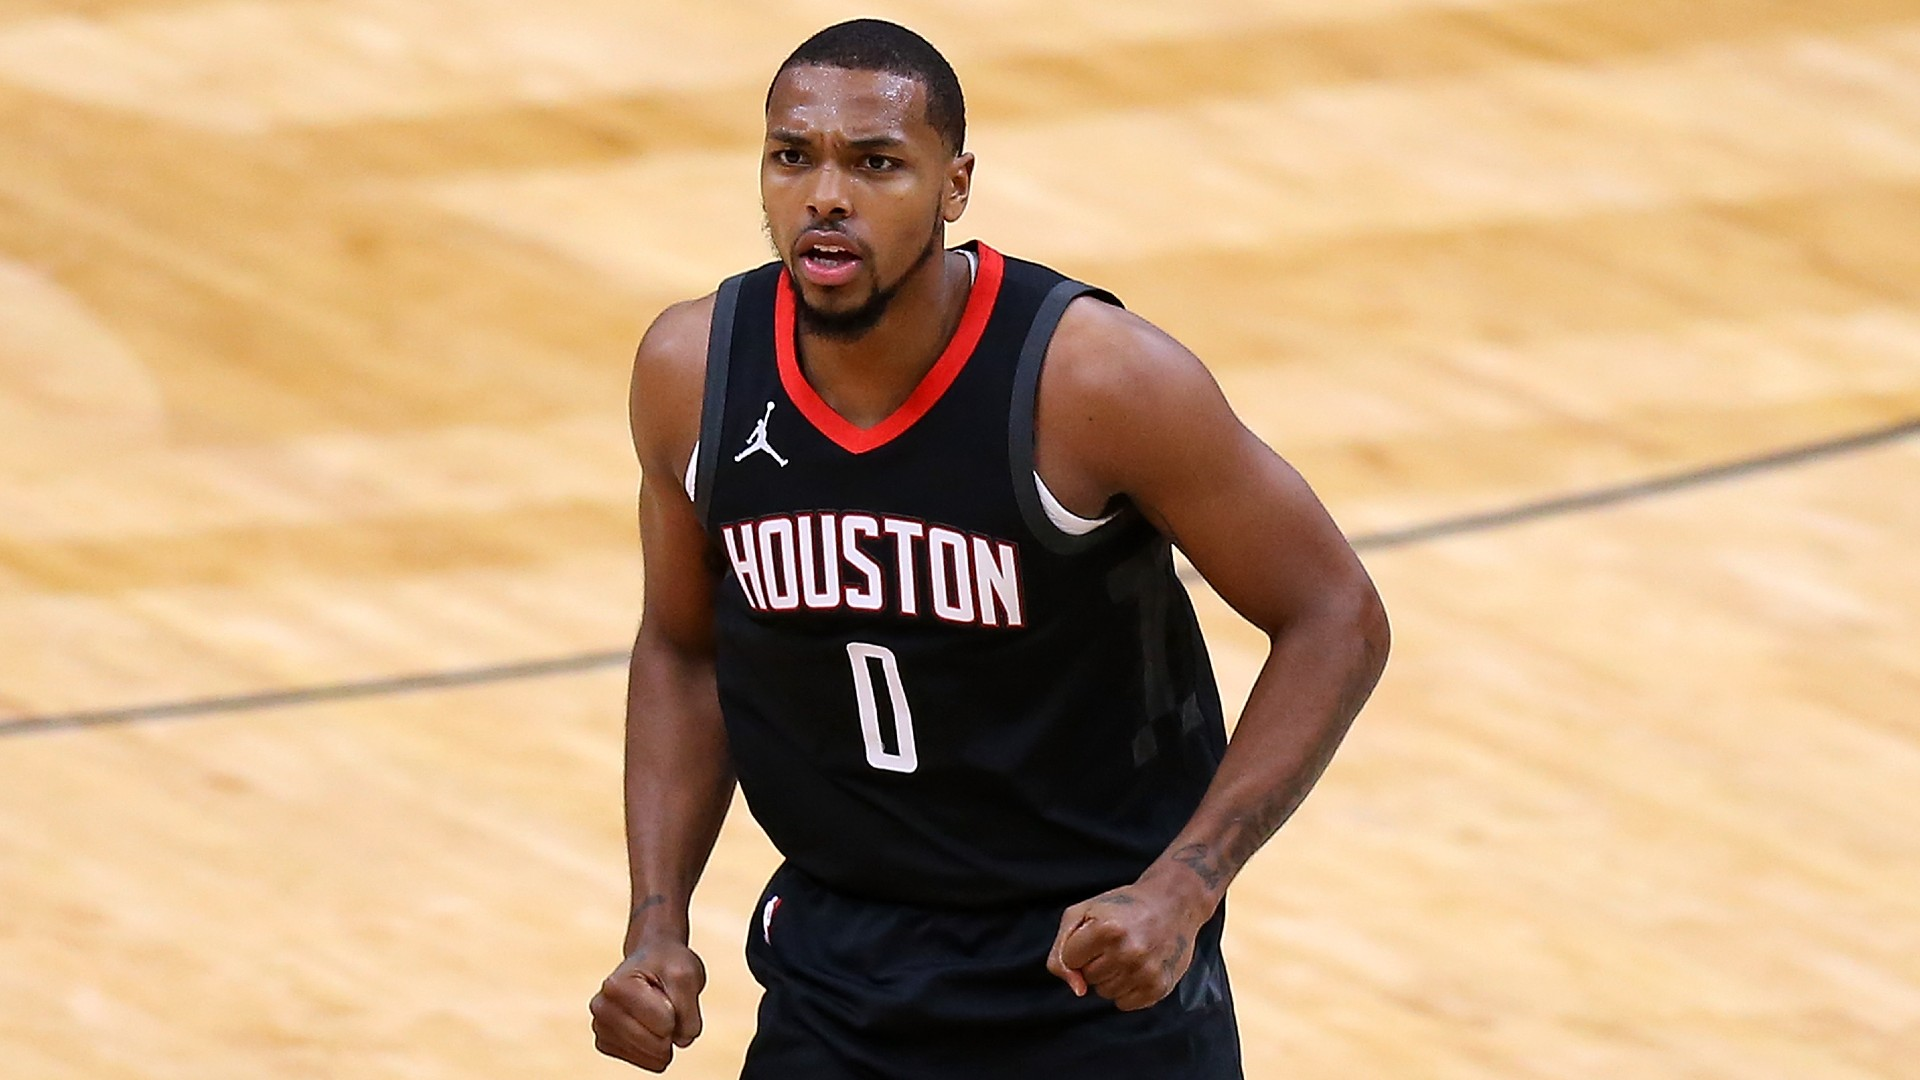 Rockets striker Sterling Brown expects full recovery after face lacerations in attack